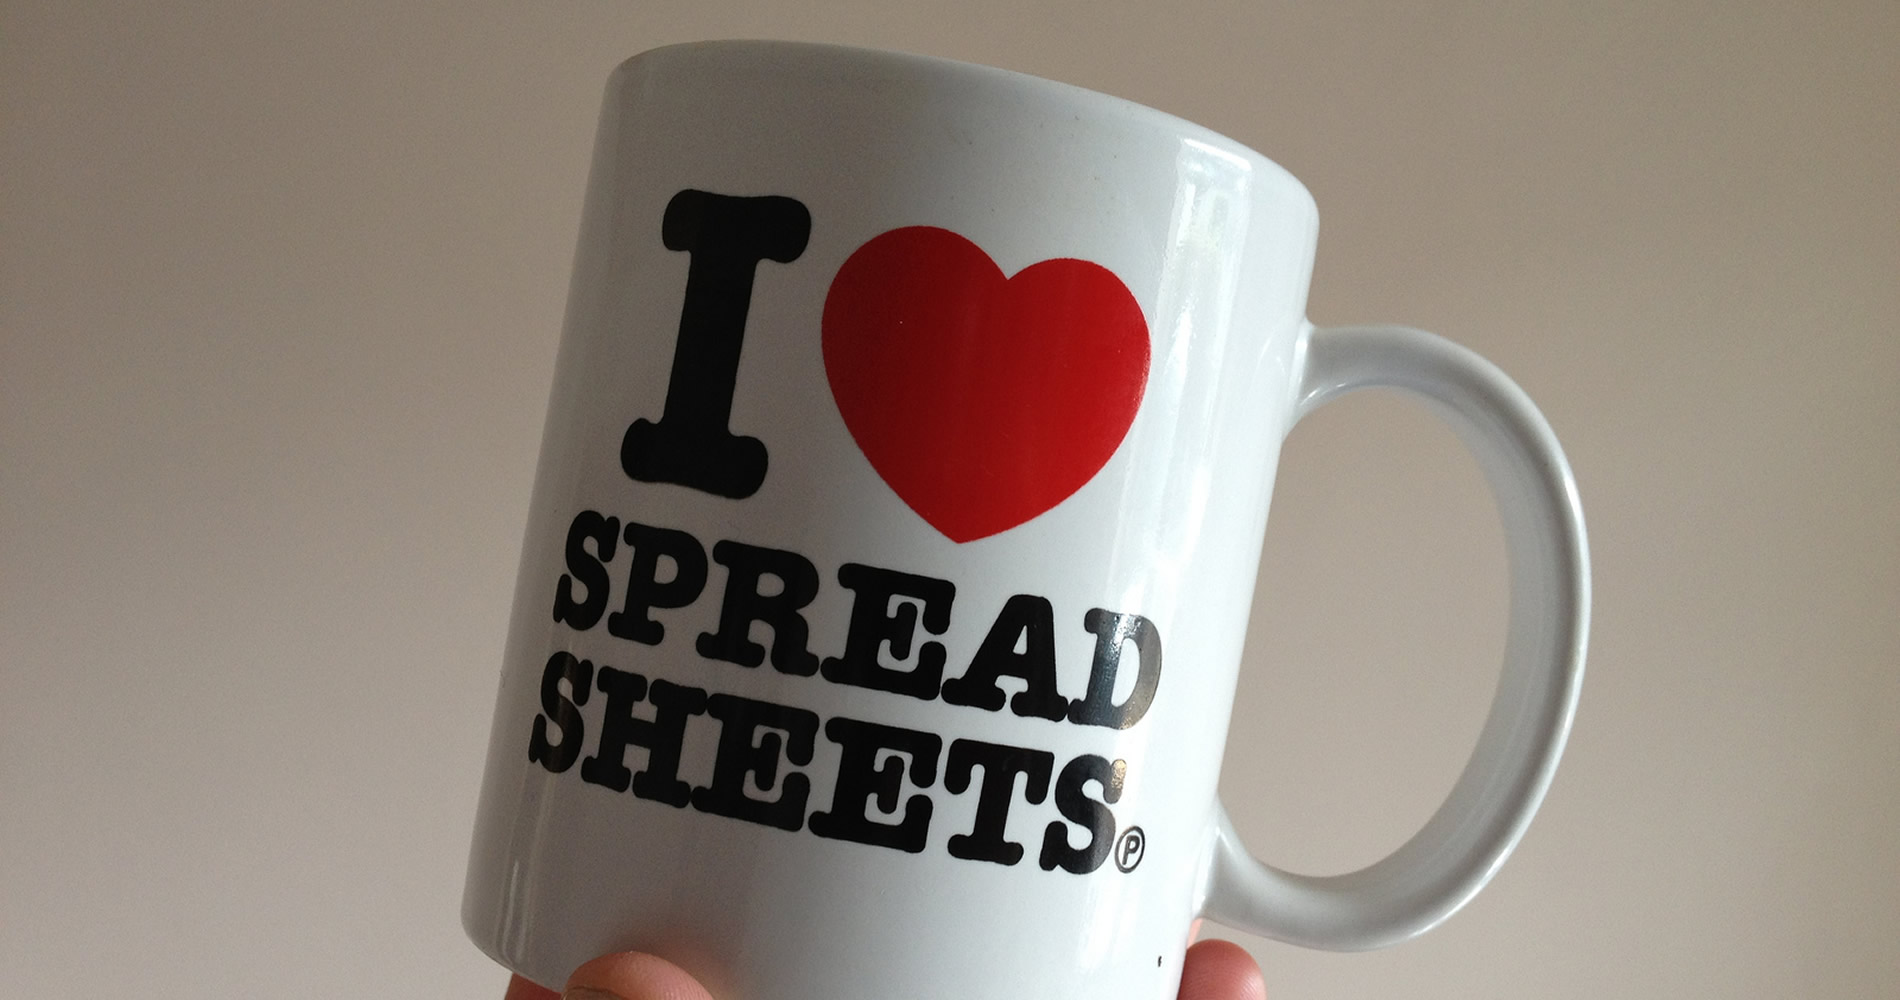 Spreadsheets are destroying your business!